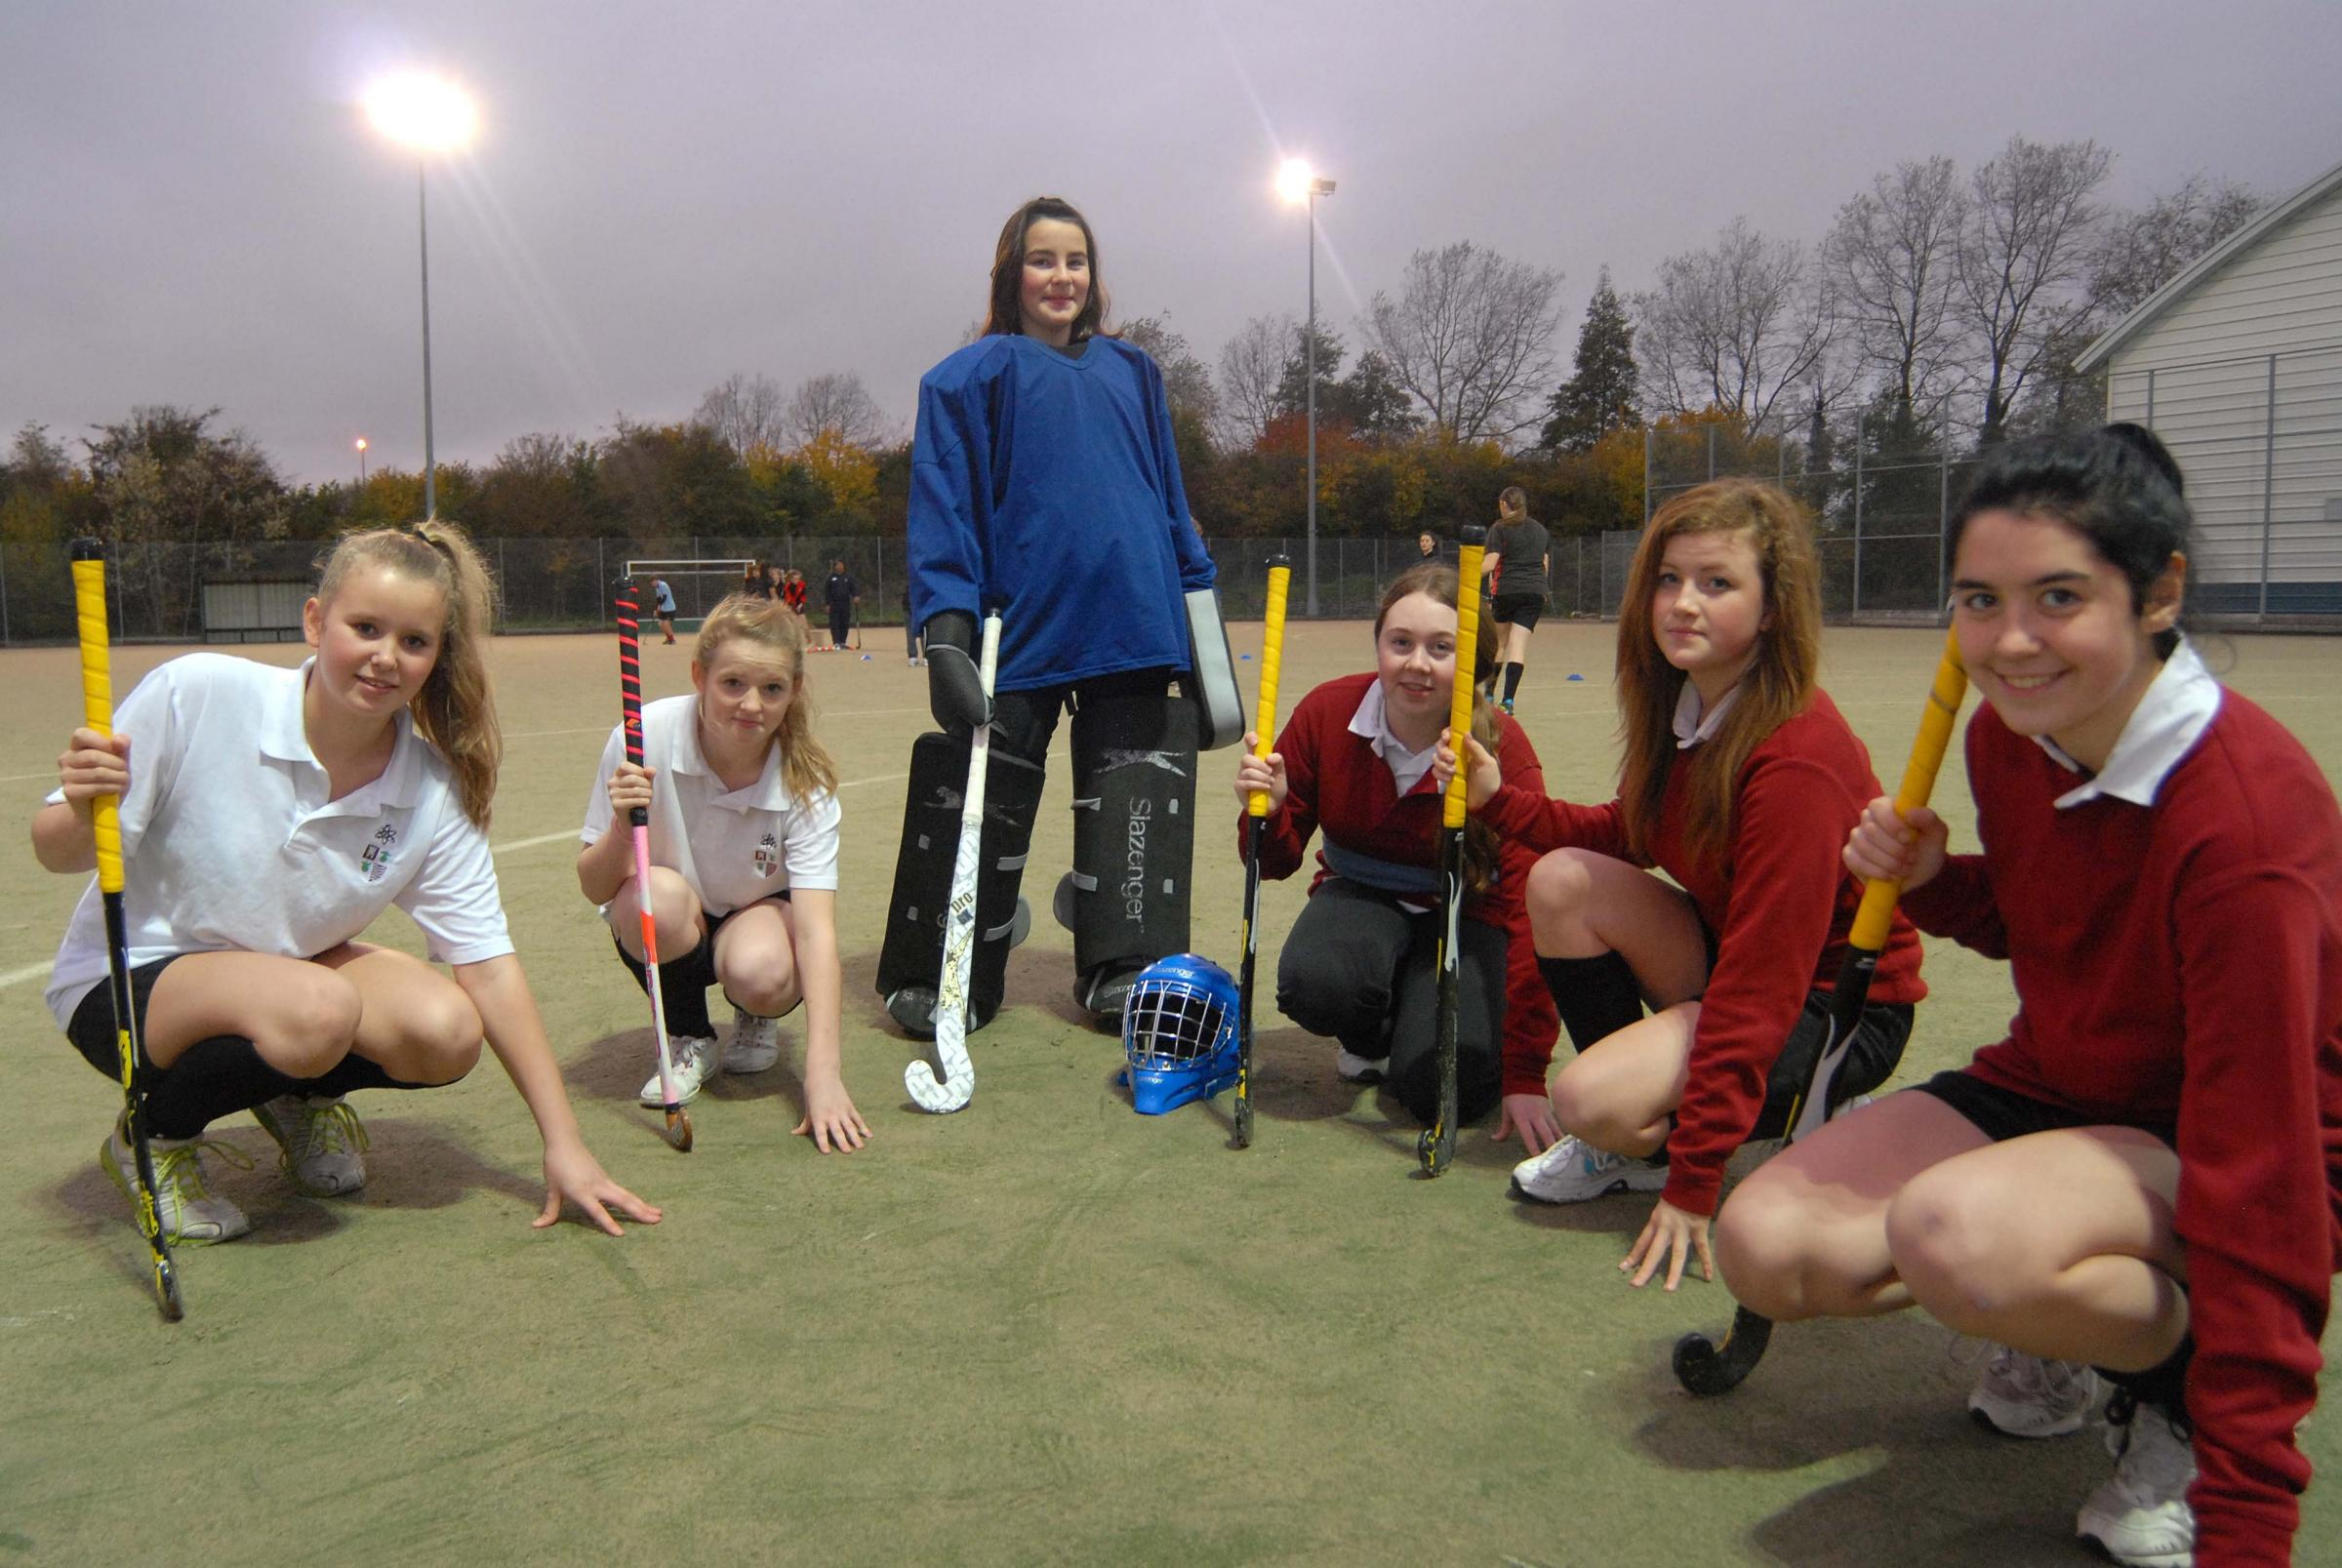 Hockey players from Tenbury High School have been helped by the Kingspan Insulation Community Trust.